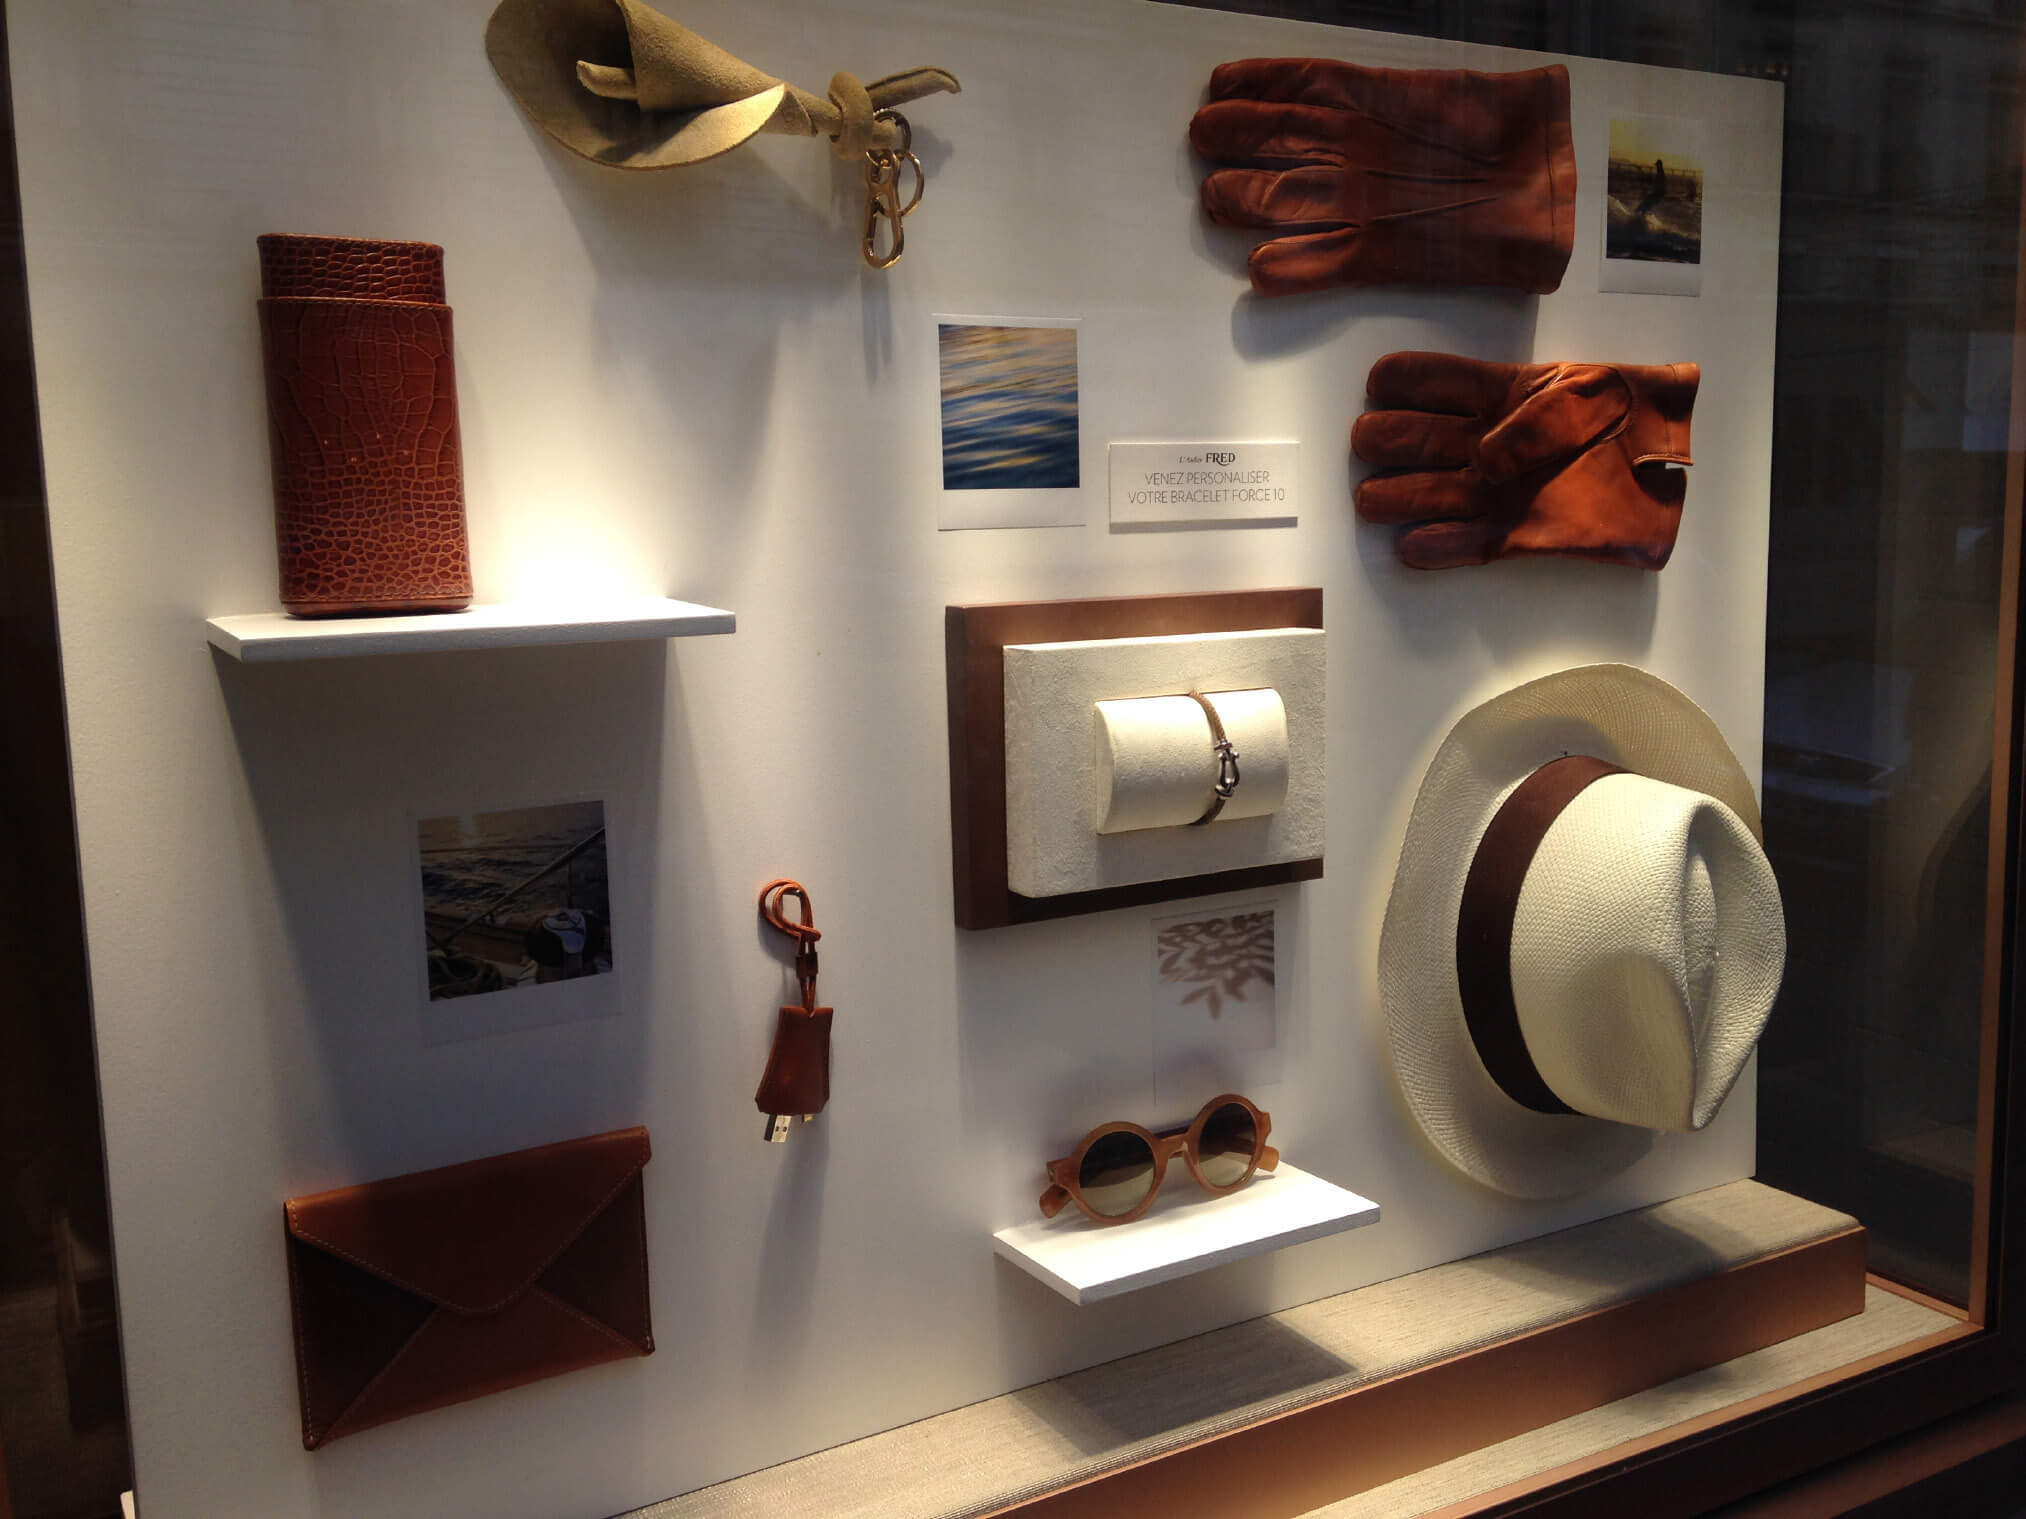 Fred-event-support-display-vitrine-retail-joaillerie-luxe-window-okto-_03